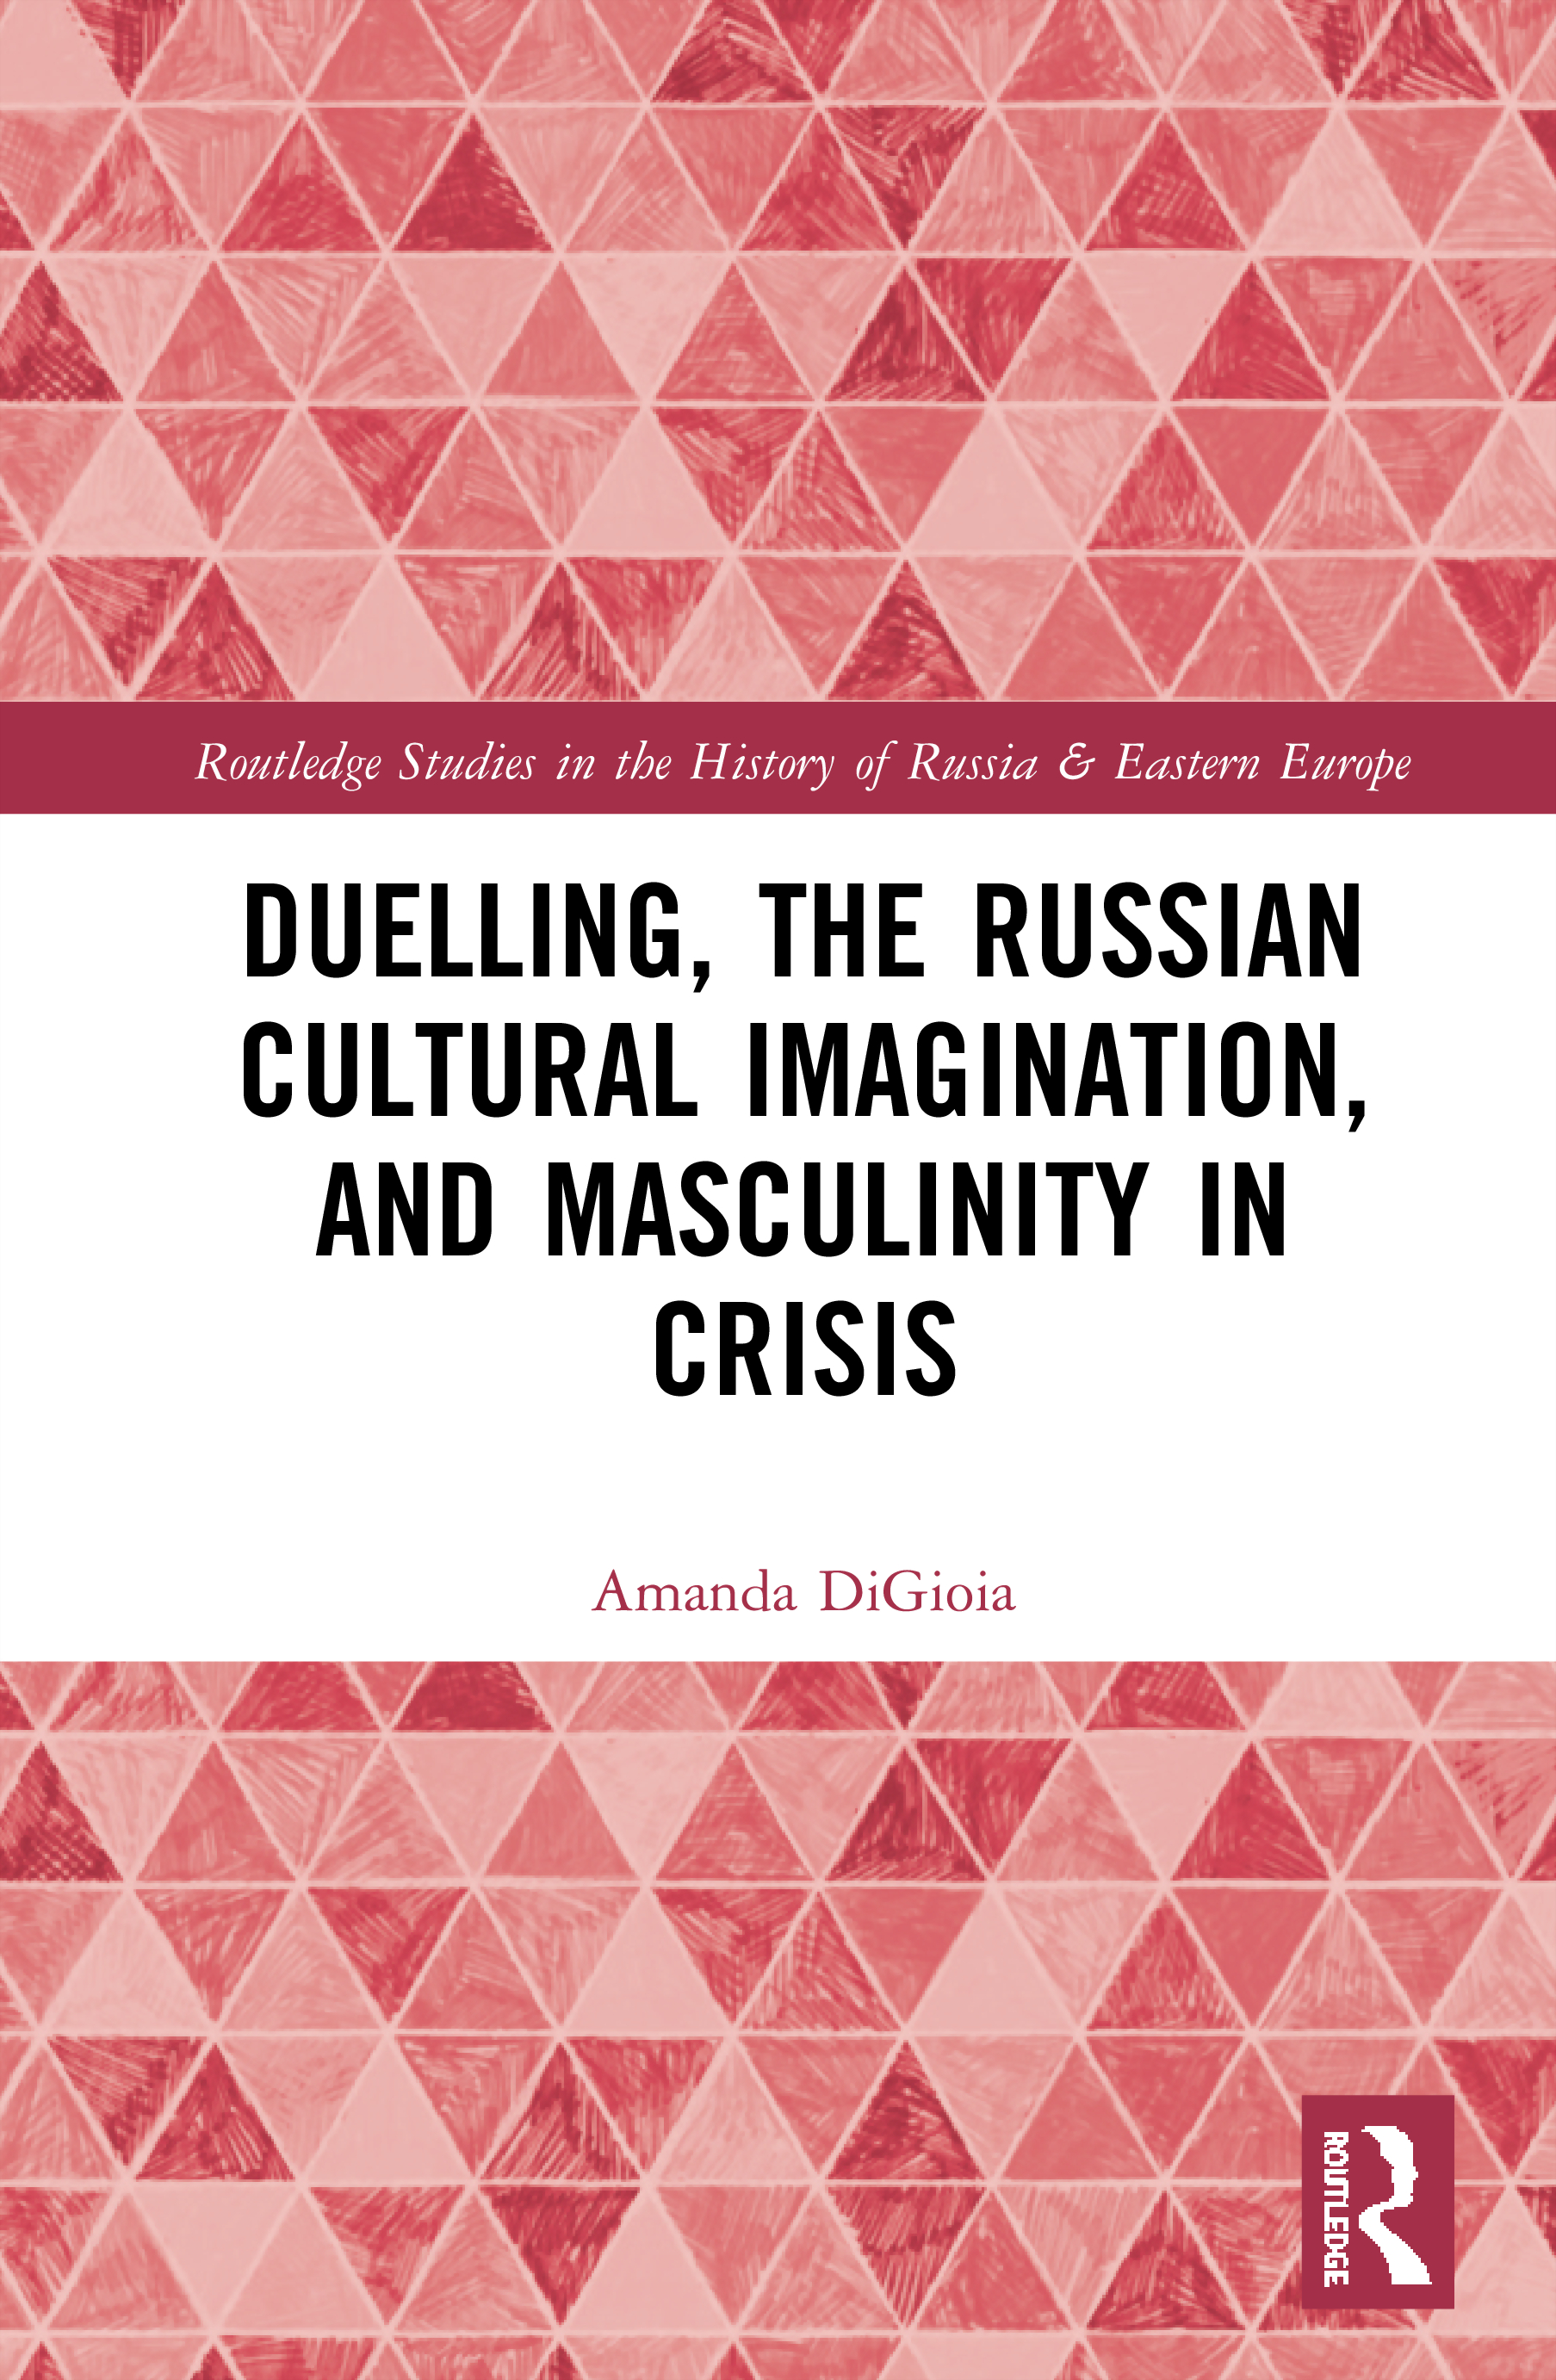 Duelling, the Russian Cultural Imagination, and Masculinity in Crisis